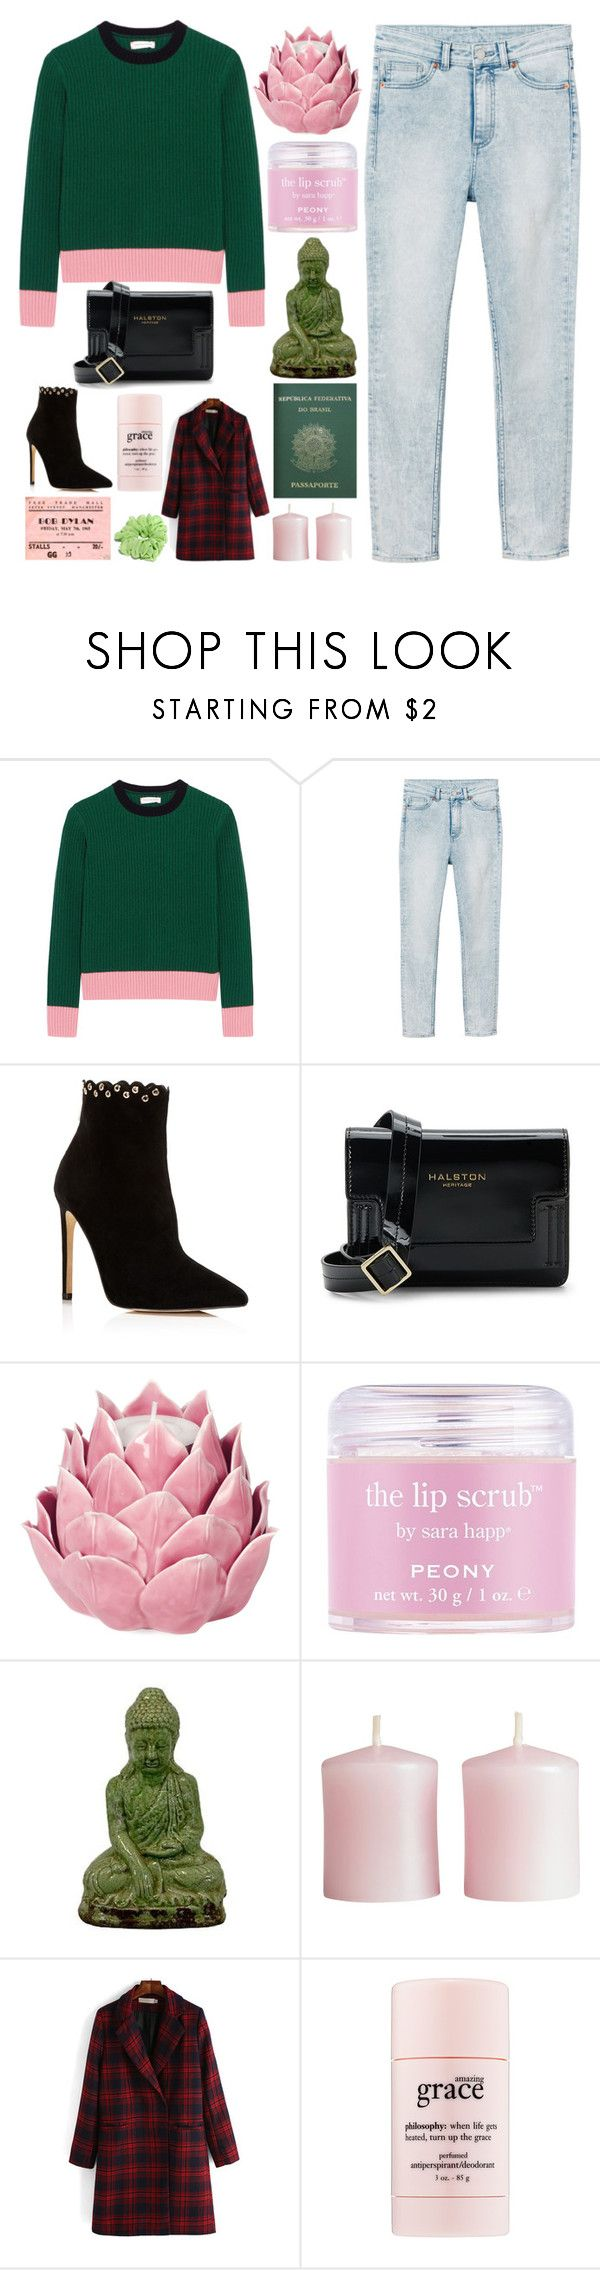 """""""Plaid coat"""" by anam53046 ❤ liked on Polyvore featuring Chinti and Parker, Monki, Raye, Halston Heritage, Zara Home, Sara Happ, Urban Trends Collection, H&M, philosophy and Passport"""